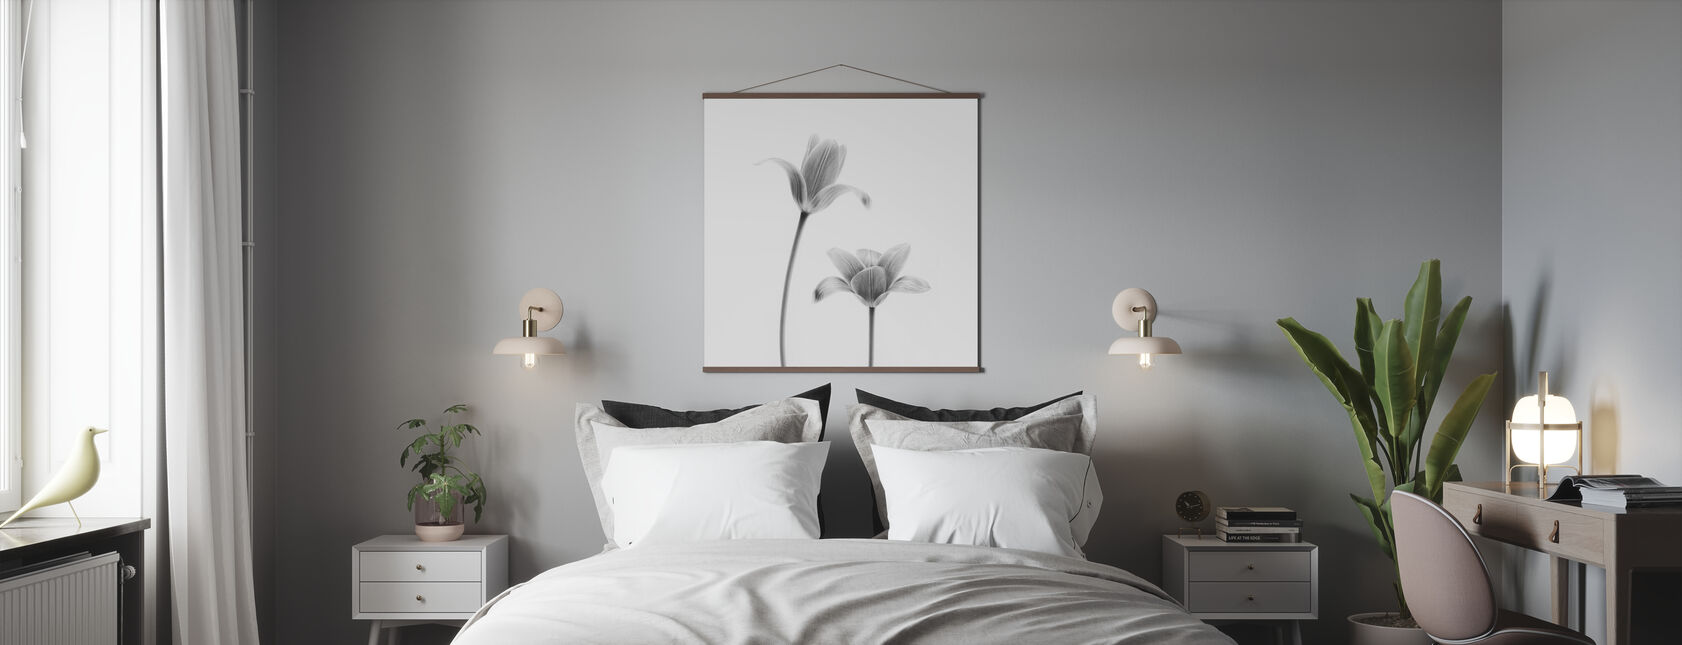 Two Tulips - Poster - Bedroom